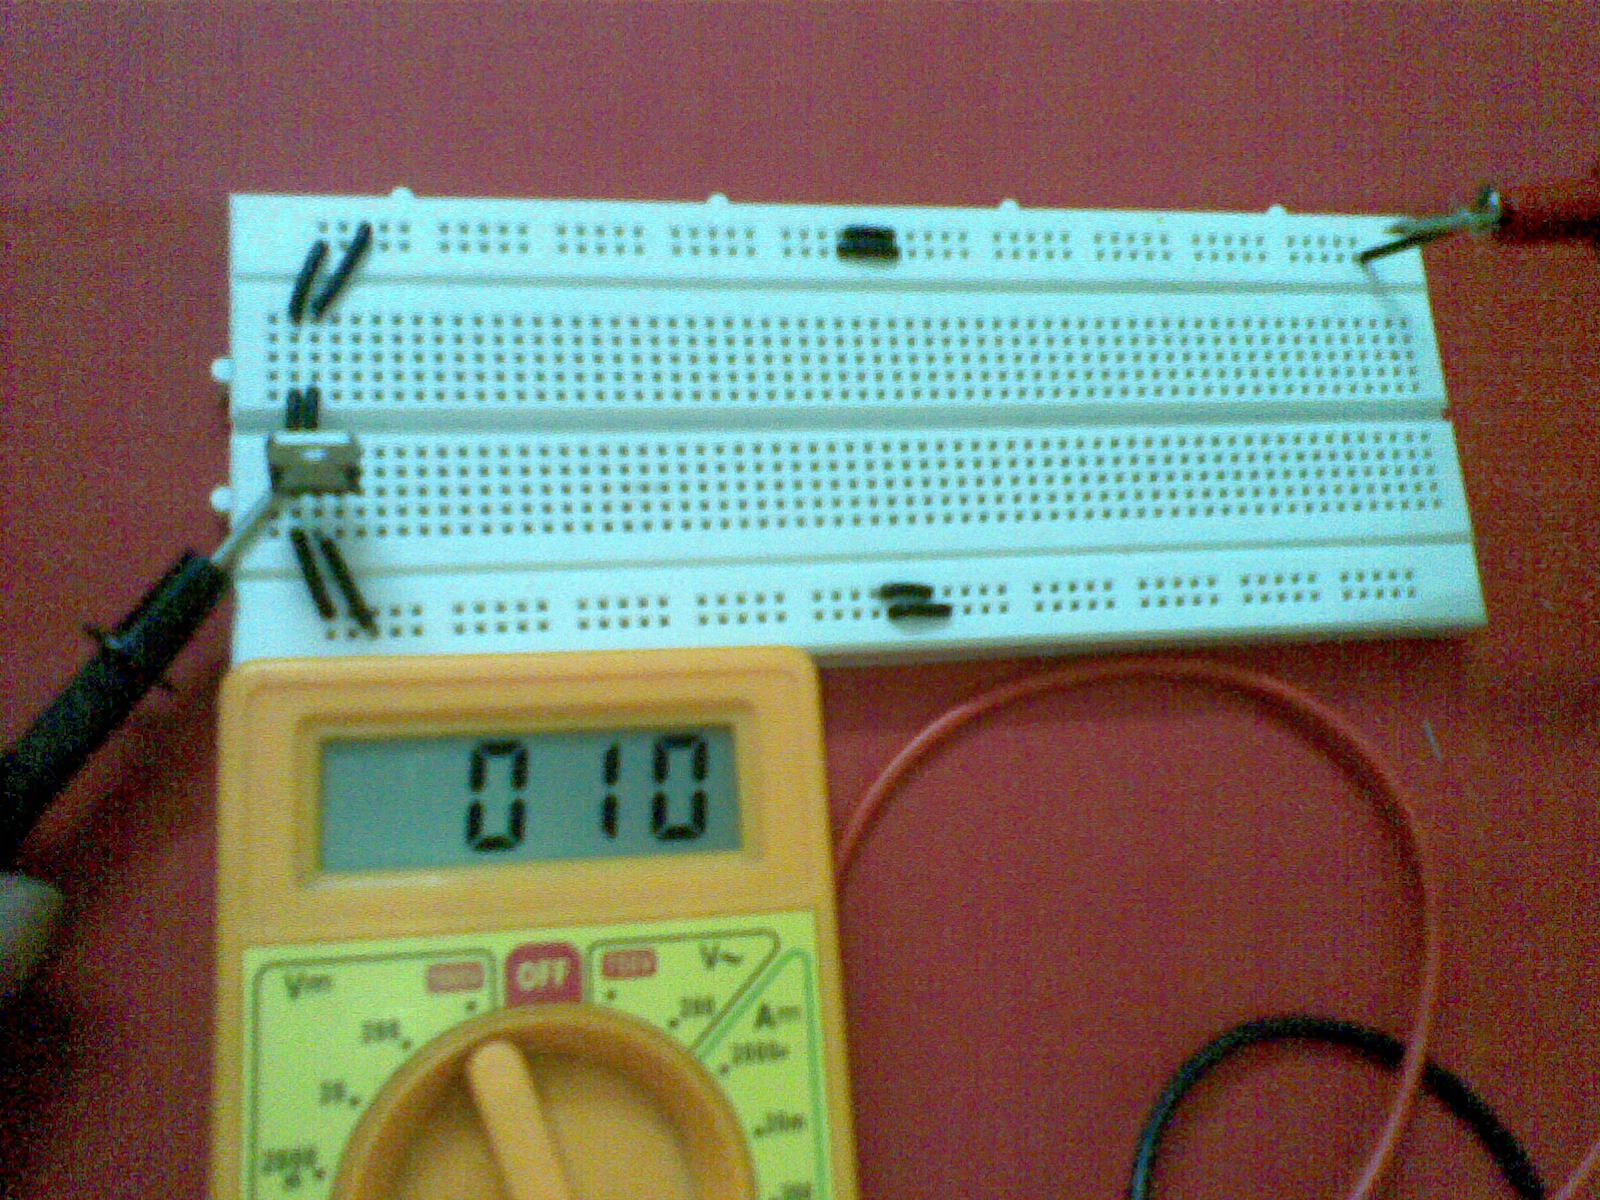 Setting up power supply and using a multimeter: | Lets Learn Electronics